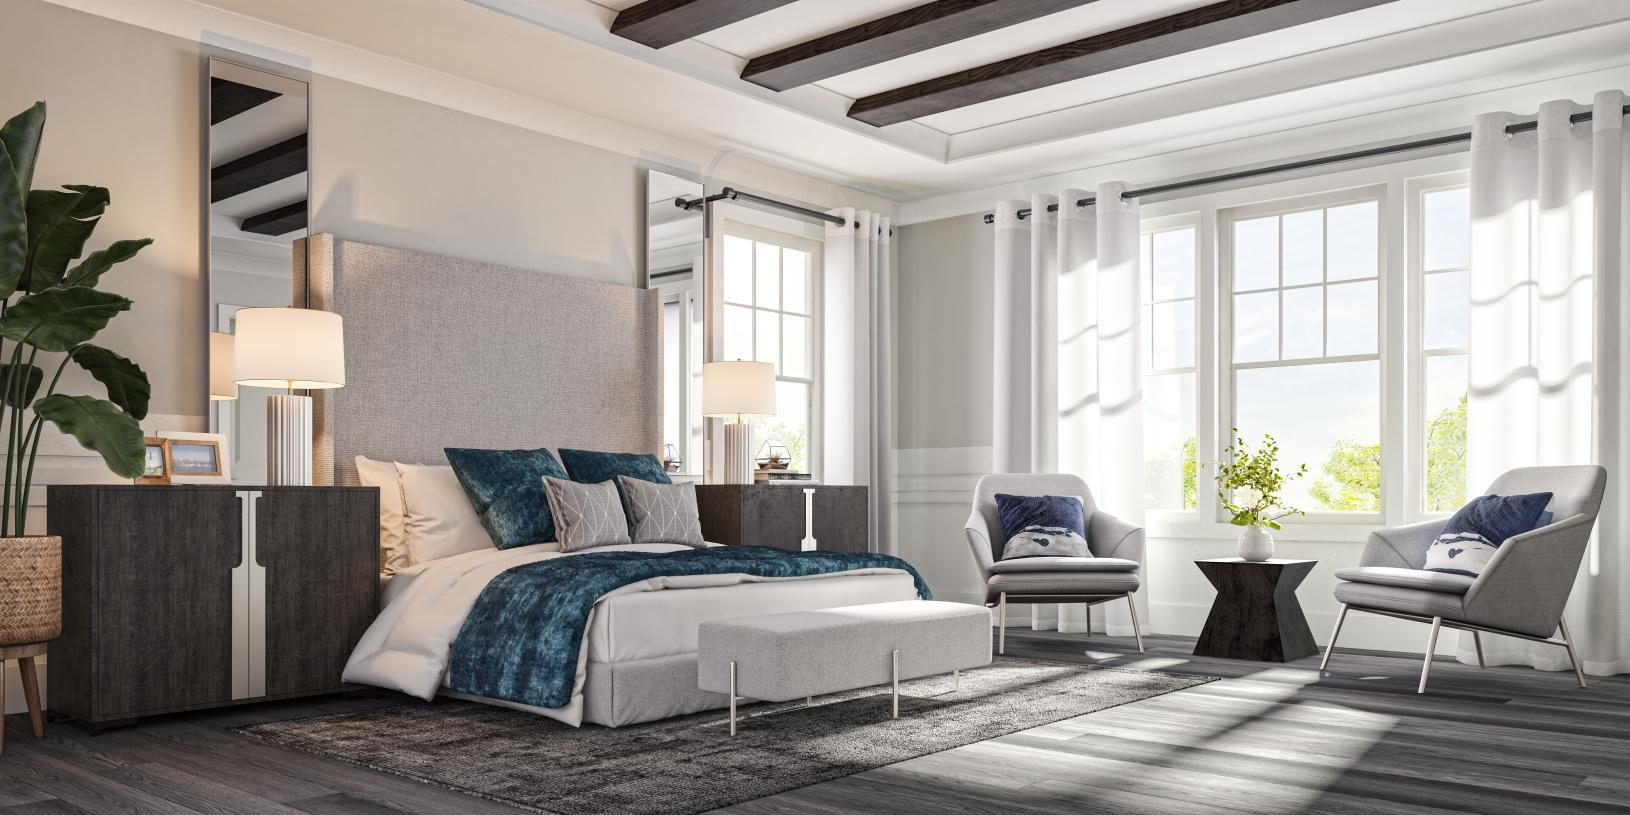 Bedroom featured in the Carlough By Toll Brothers in Bergen County, NJ